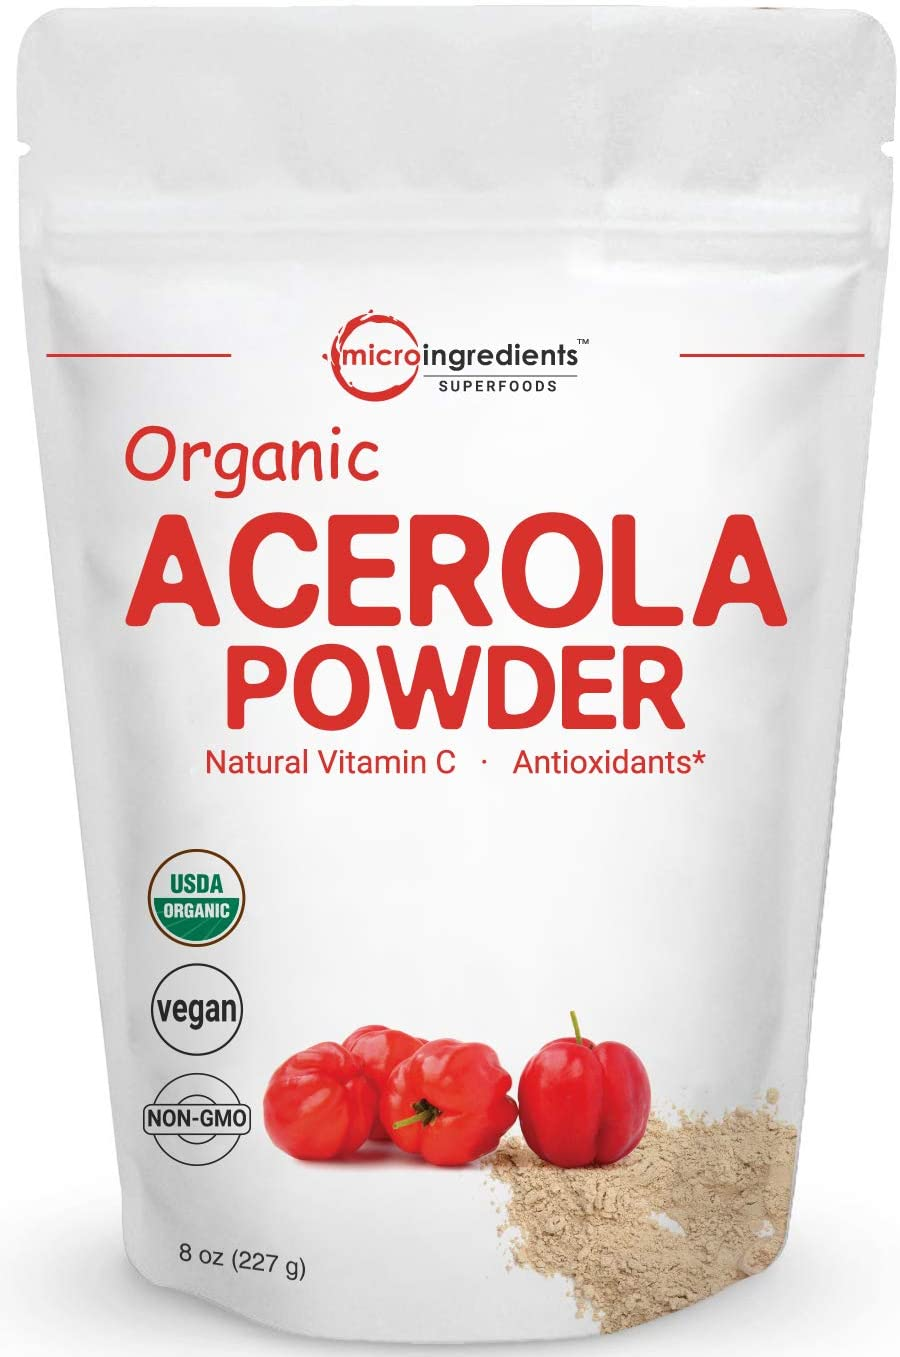 Pure Acerola Cherry Powder Organic, Natural and Organic Vitamin C Powder (Immune Vitamin) for Immune System Booster, 8 Ounce, Best Superfoods for Beverage, Smoothie and Drinks, Vegan Friendly